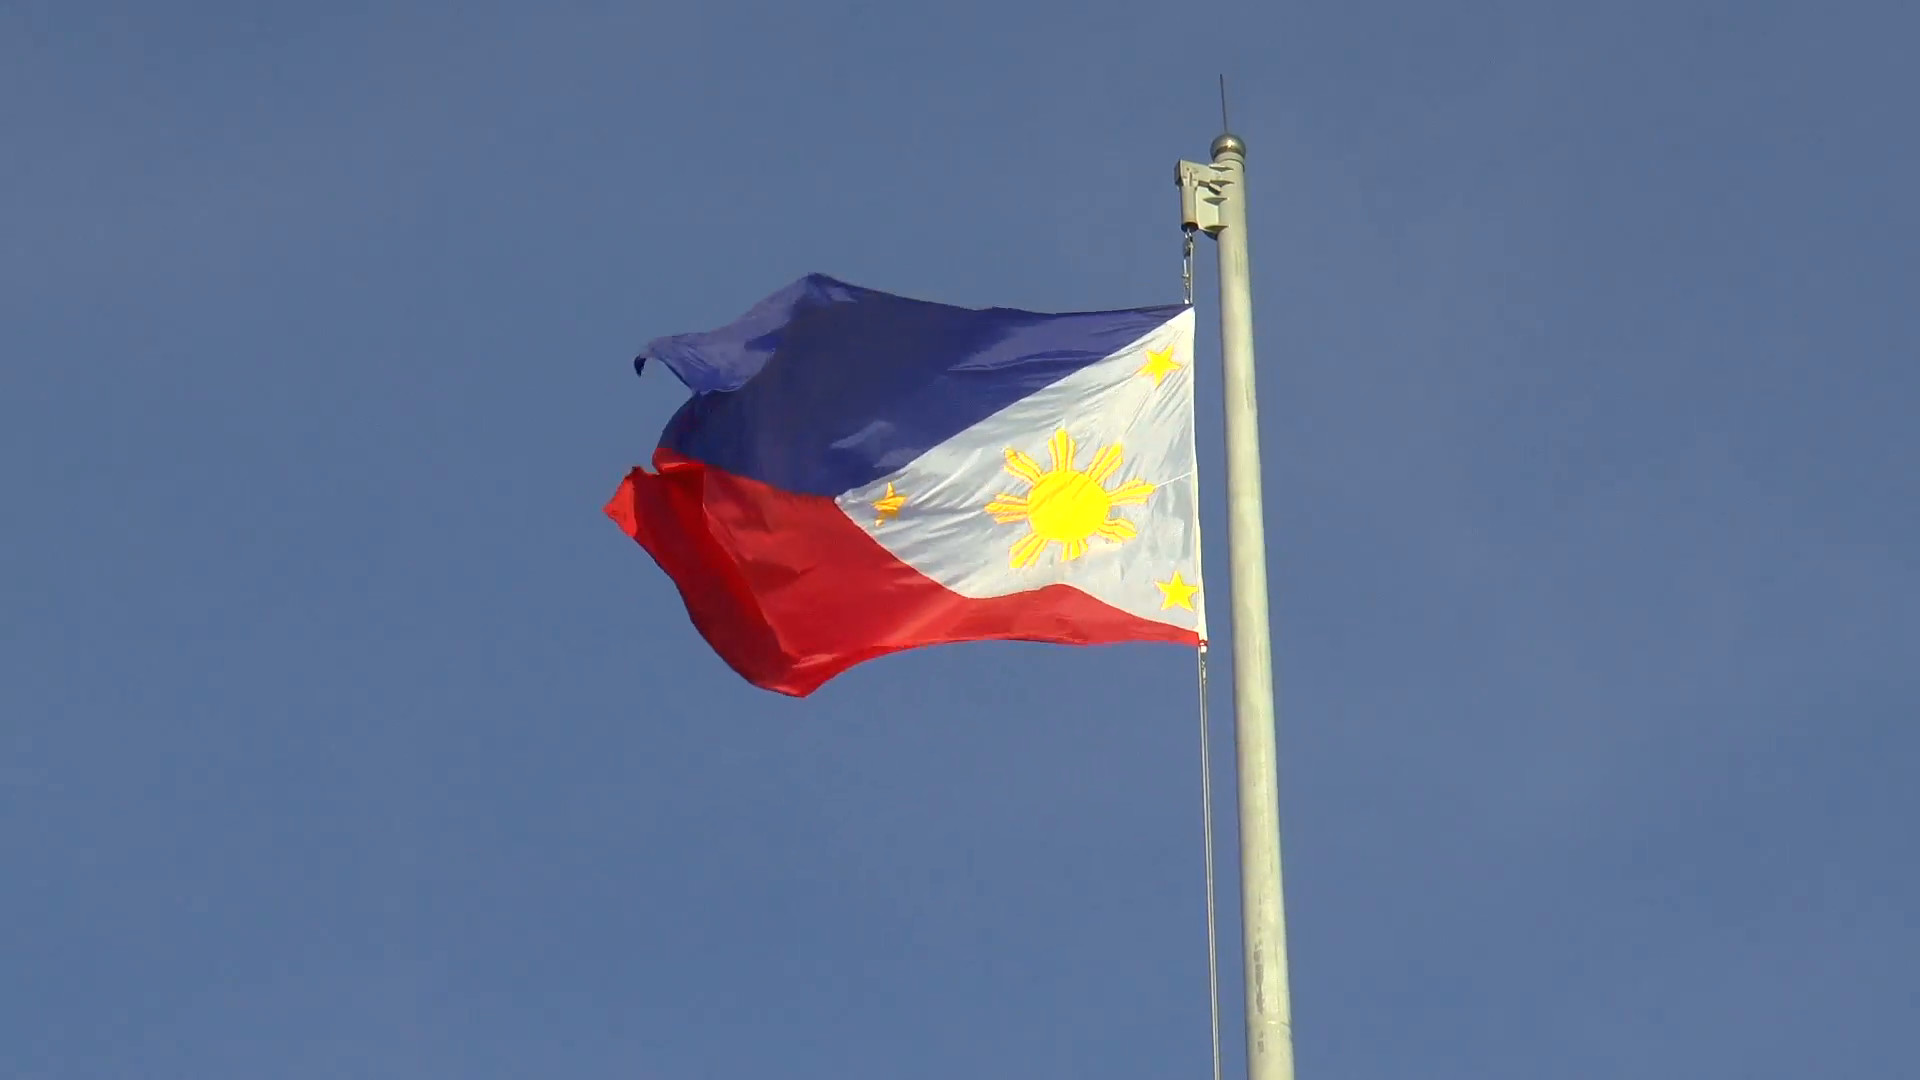 Res: 1920x1080, huge philippines flag - huge Philippine flag smoothly waving. Stock Video  Footage - Videoblocks